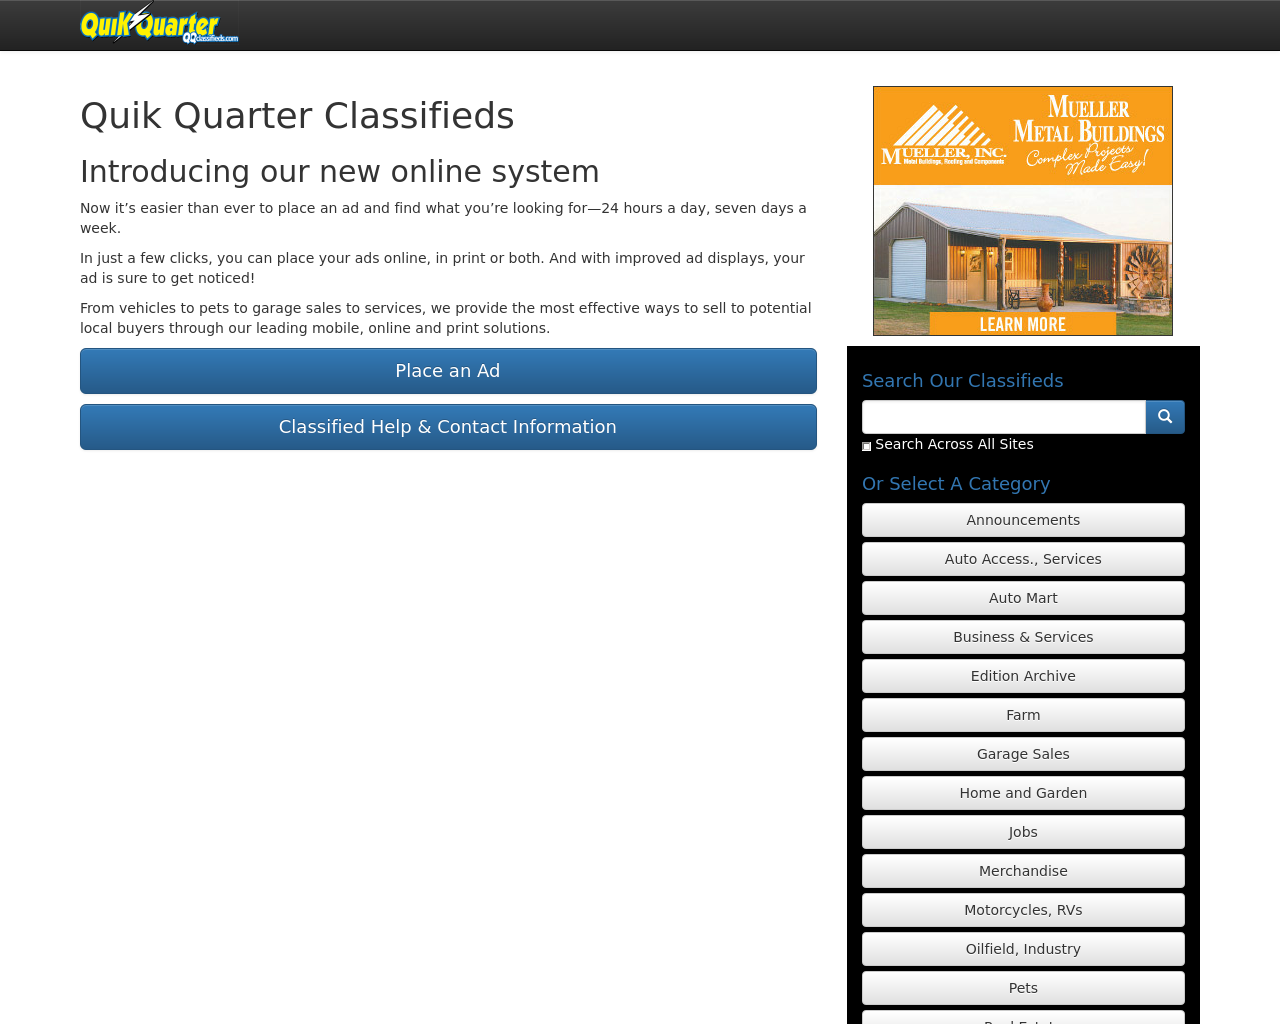 QuikQuarter-Classifieds-Advertising-Reviews-Pricing